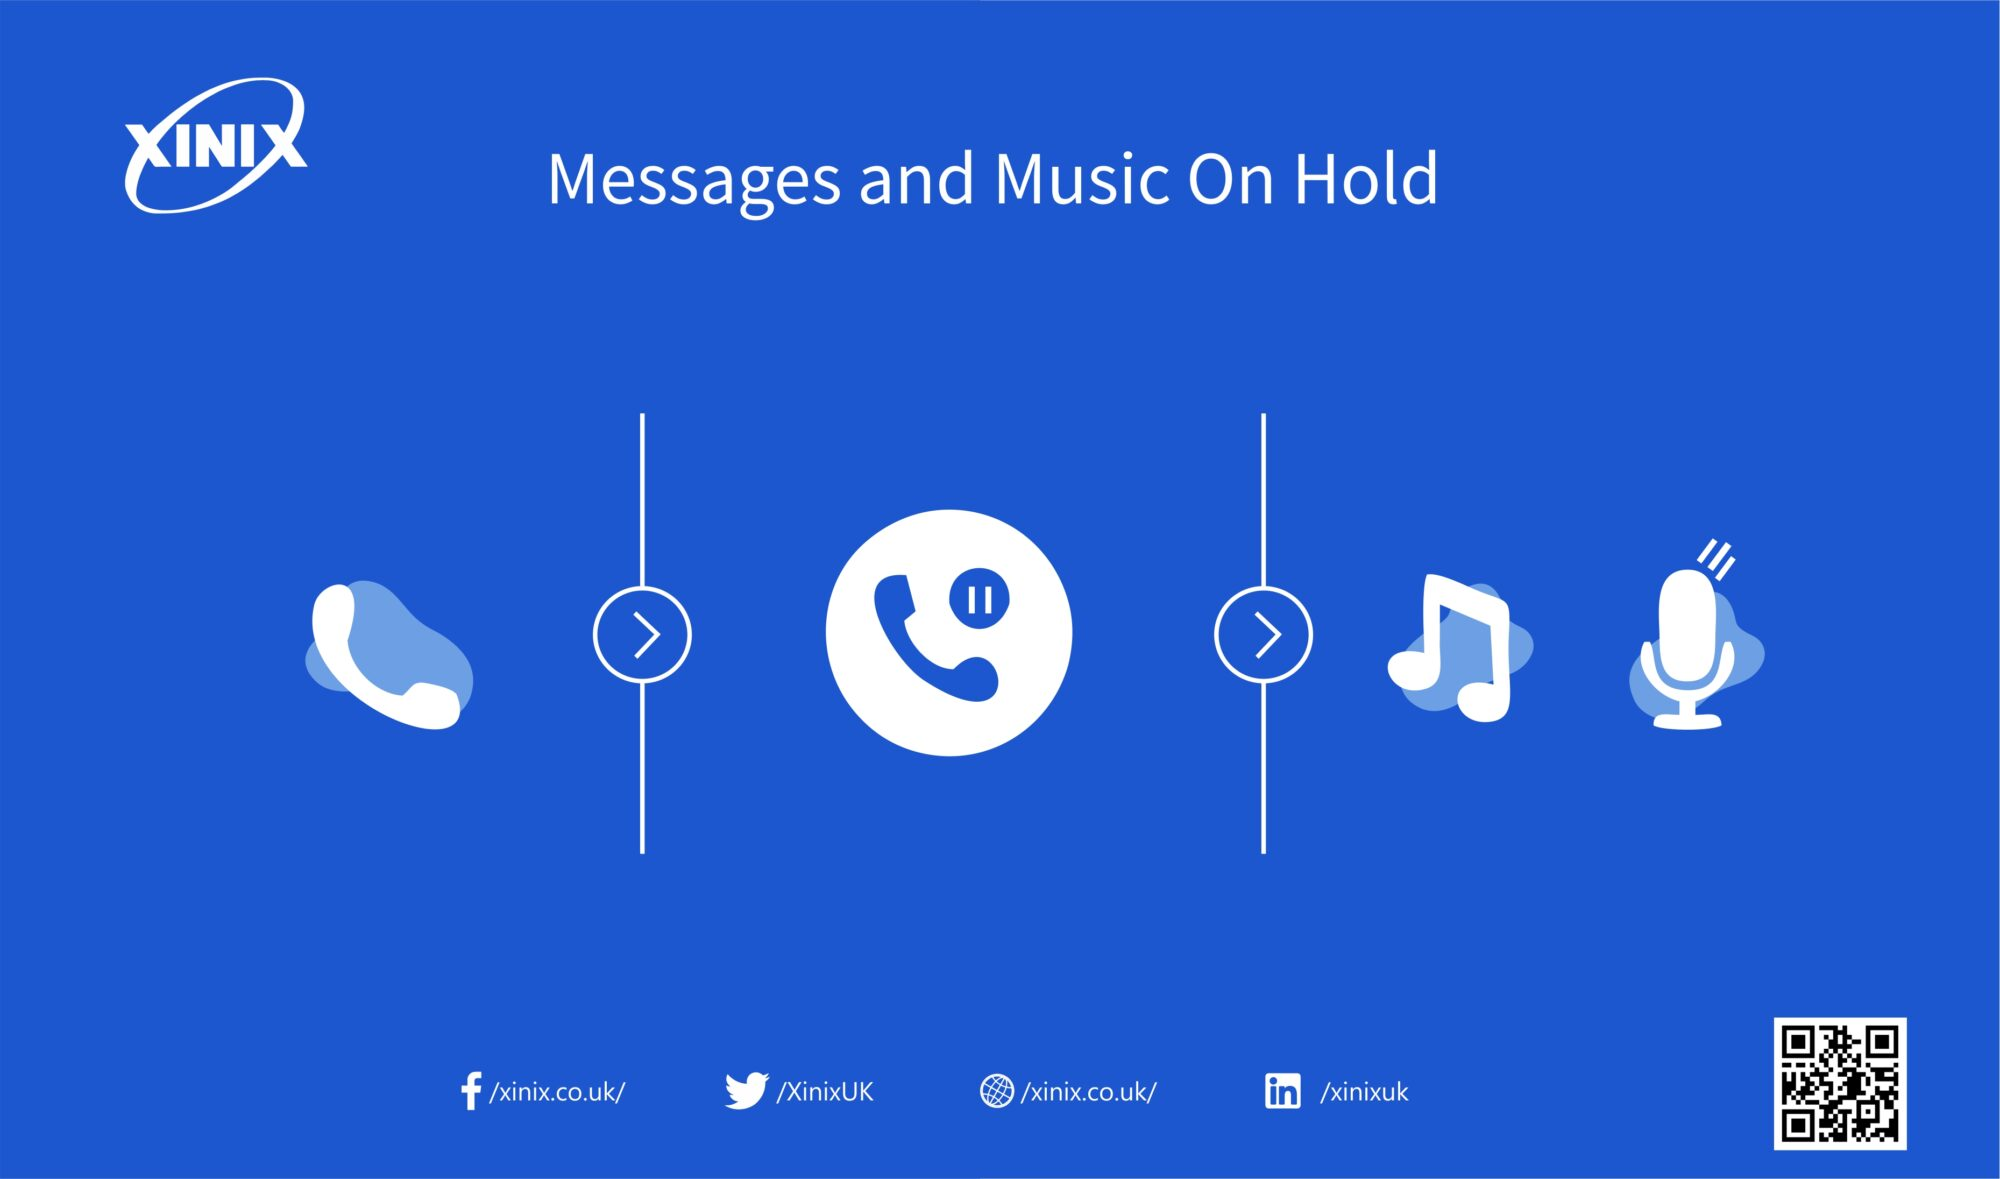 Messages and Music On Hold